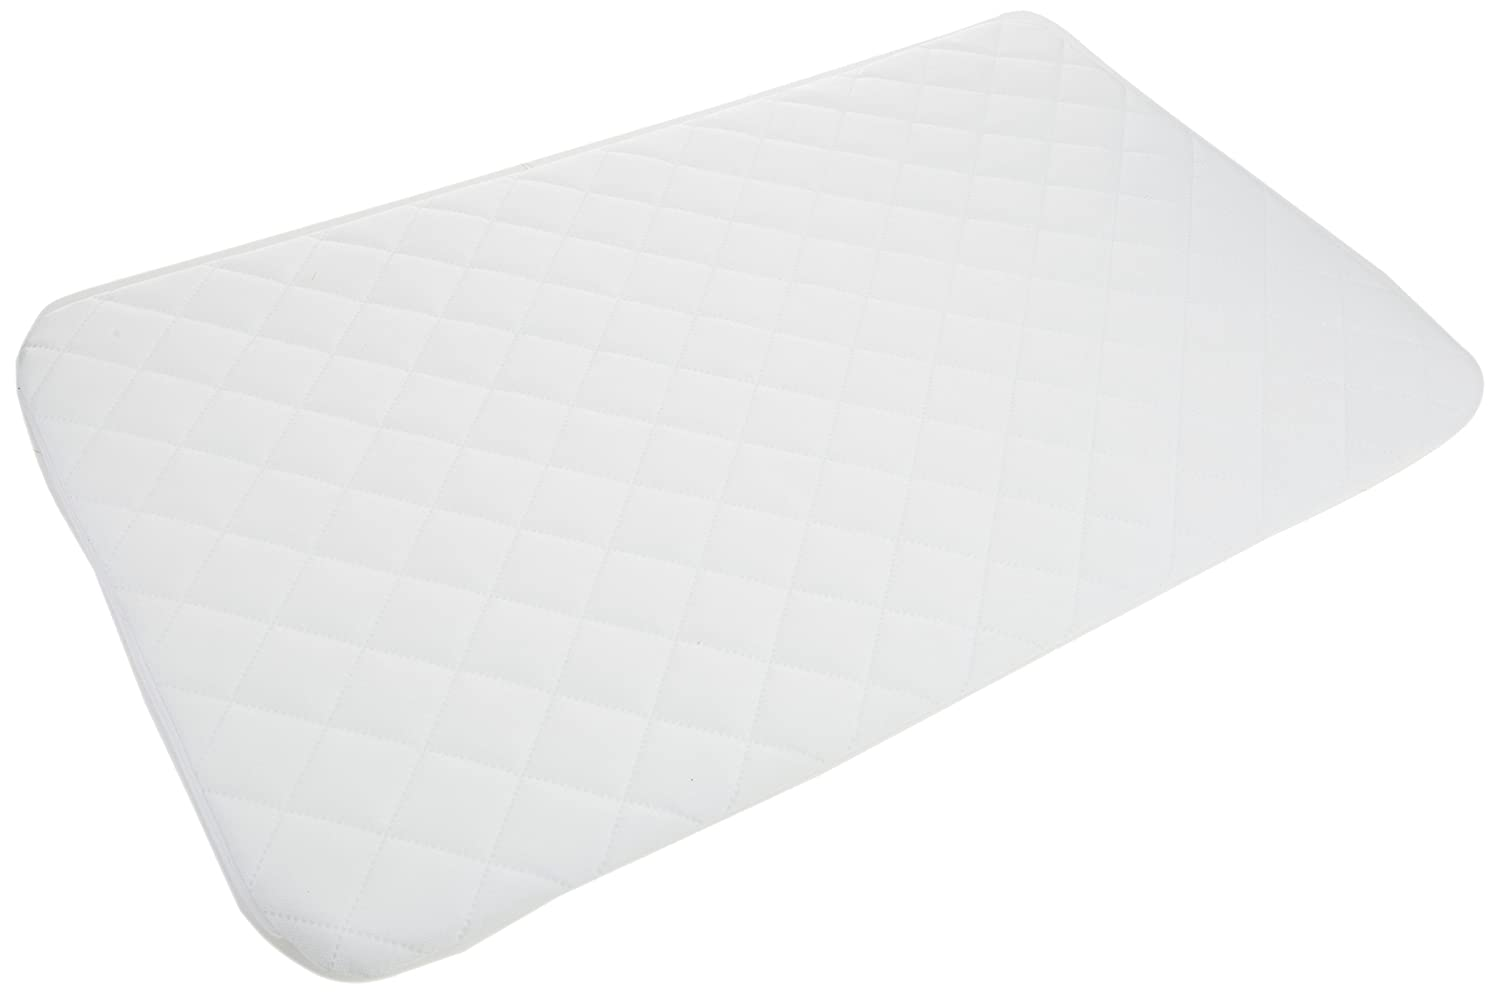 Kit for Kids Kidtex Foam Small Crib Mattress (80 x 50 x 3 cm) KIDTEX134